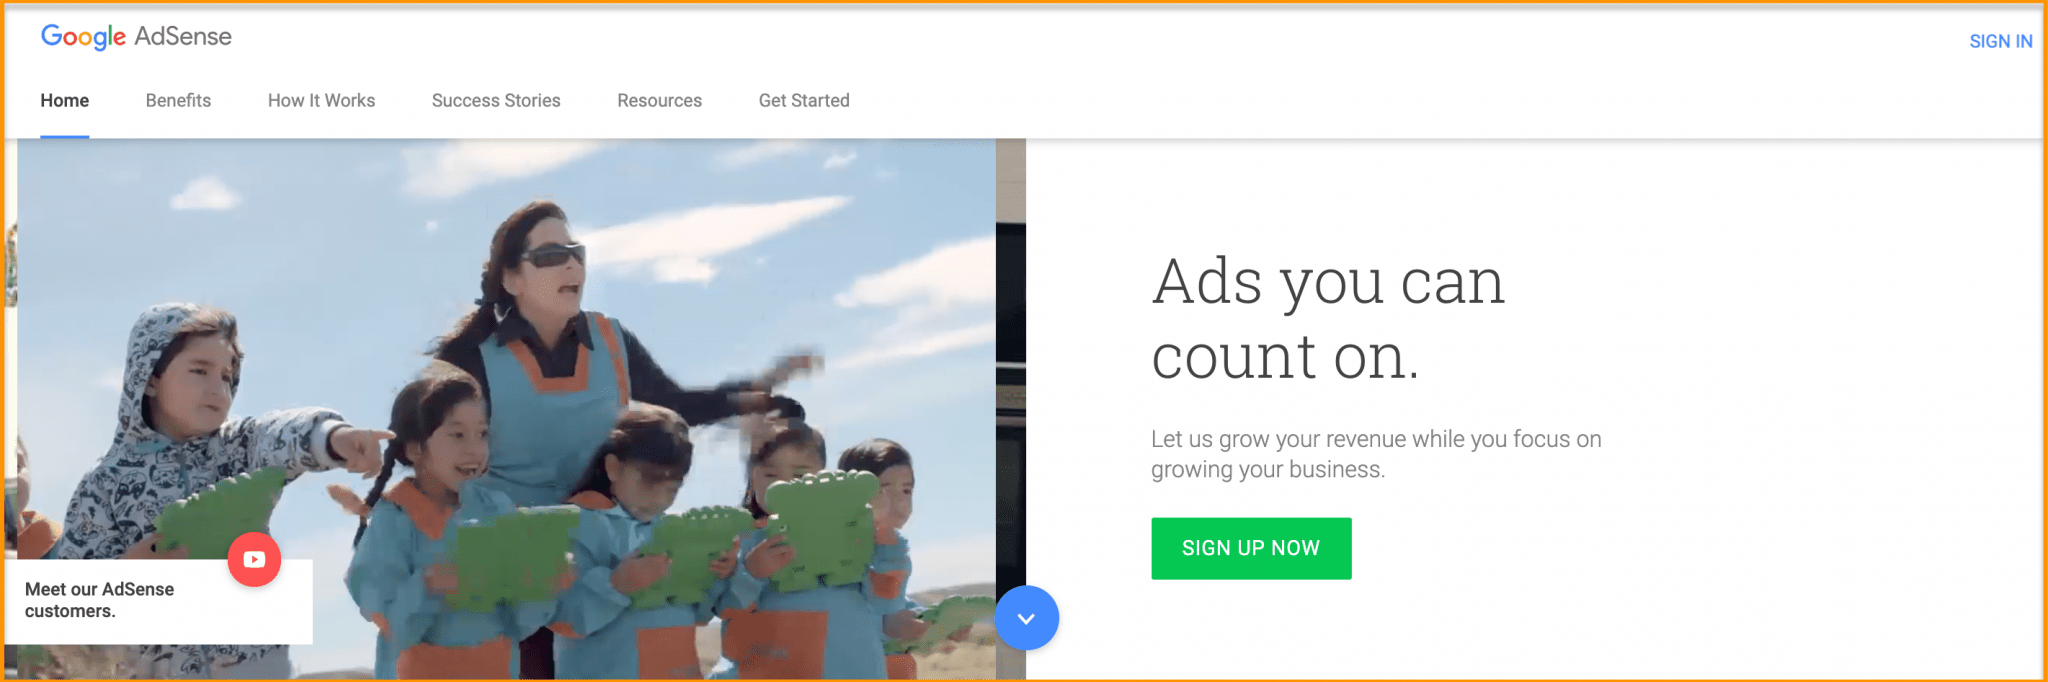 How to Create a Google Adsense Account in 2019